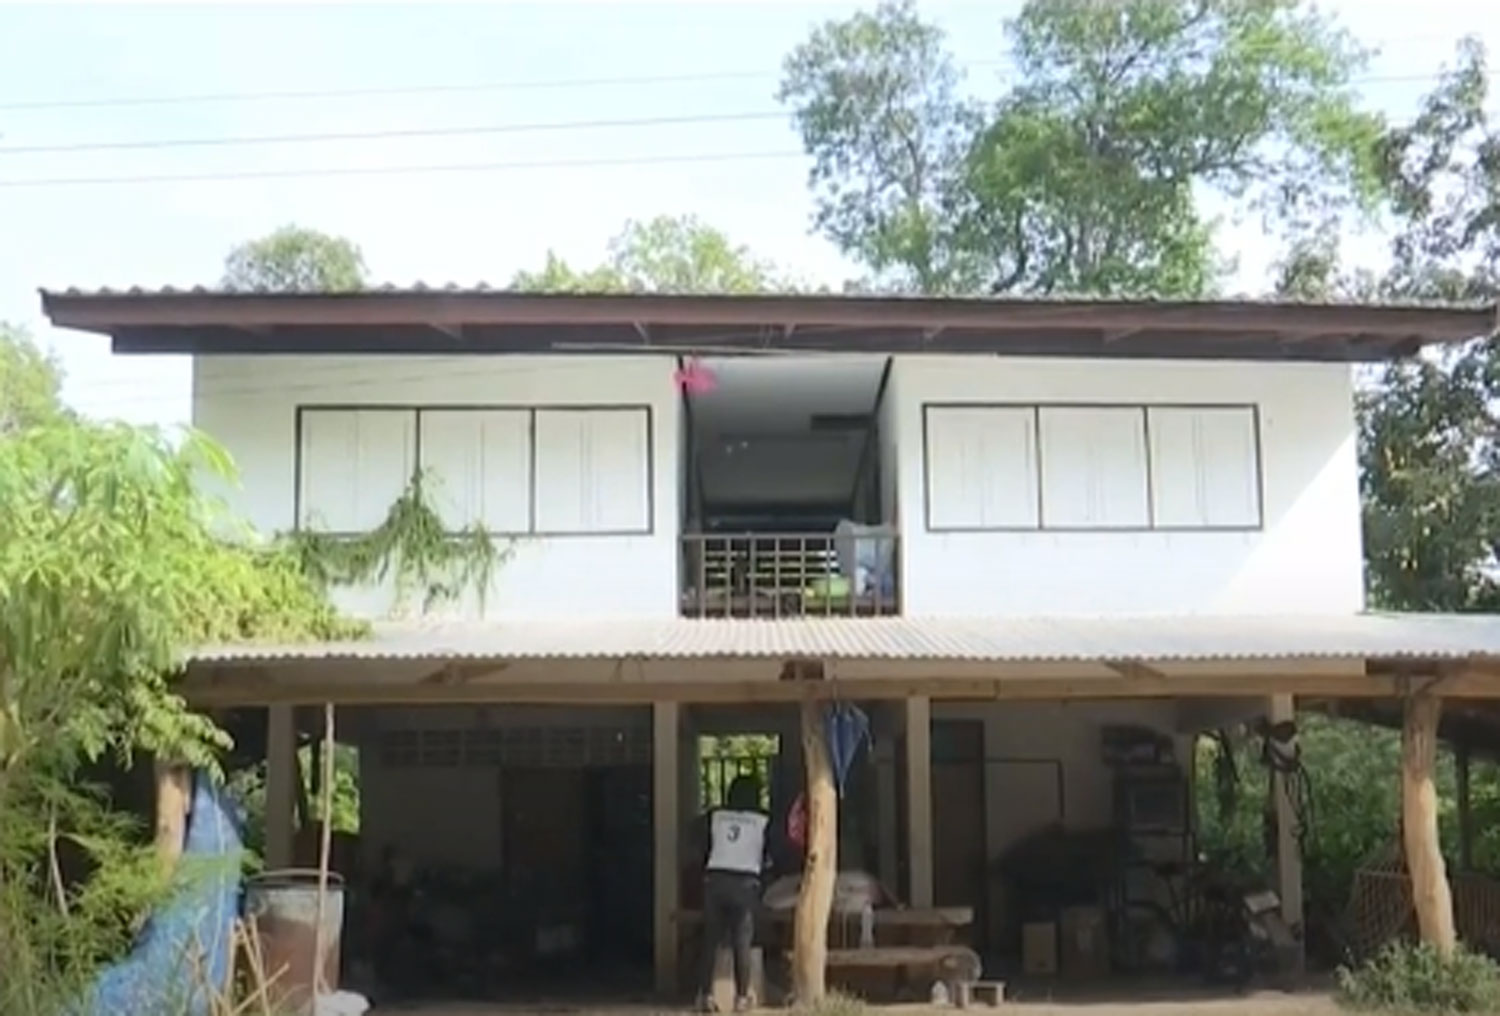 The teachers' living quarters at the school in Mukdahan is one of the locations where the sexual assaults allegedly took place. (Image captured from TV Channel 3).